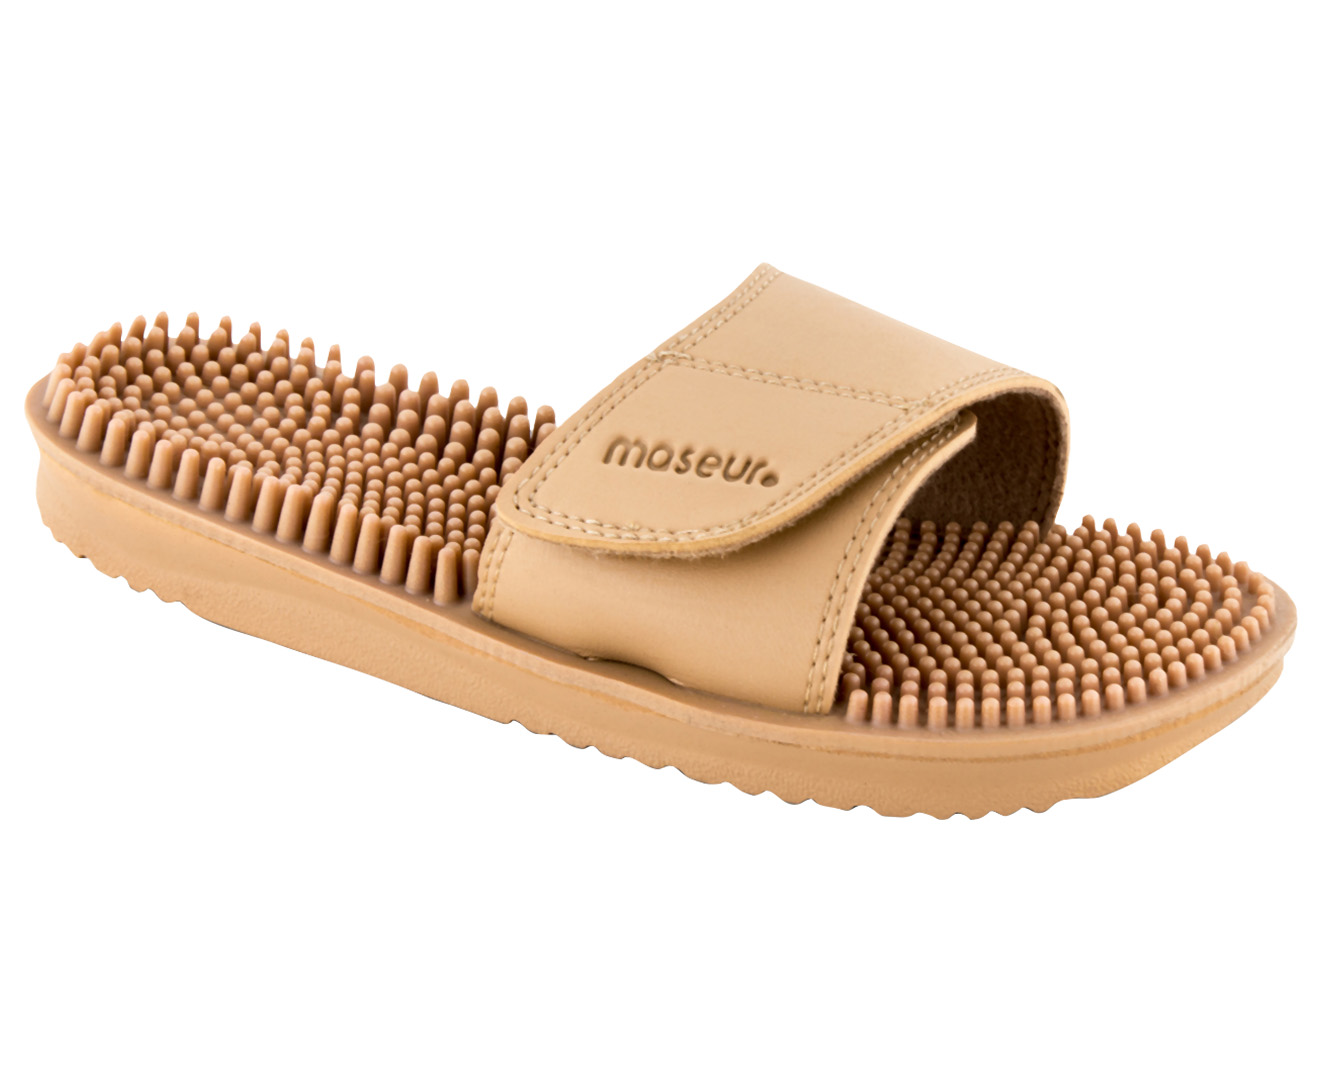 53a858b49f09 Maseur Invigorating Massage Sandal - Beige